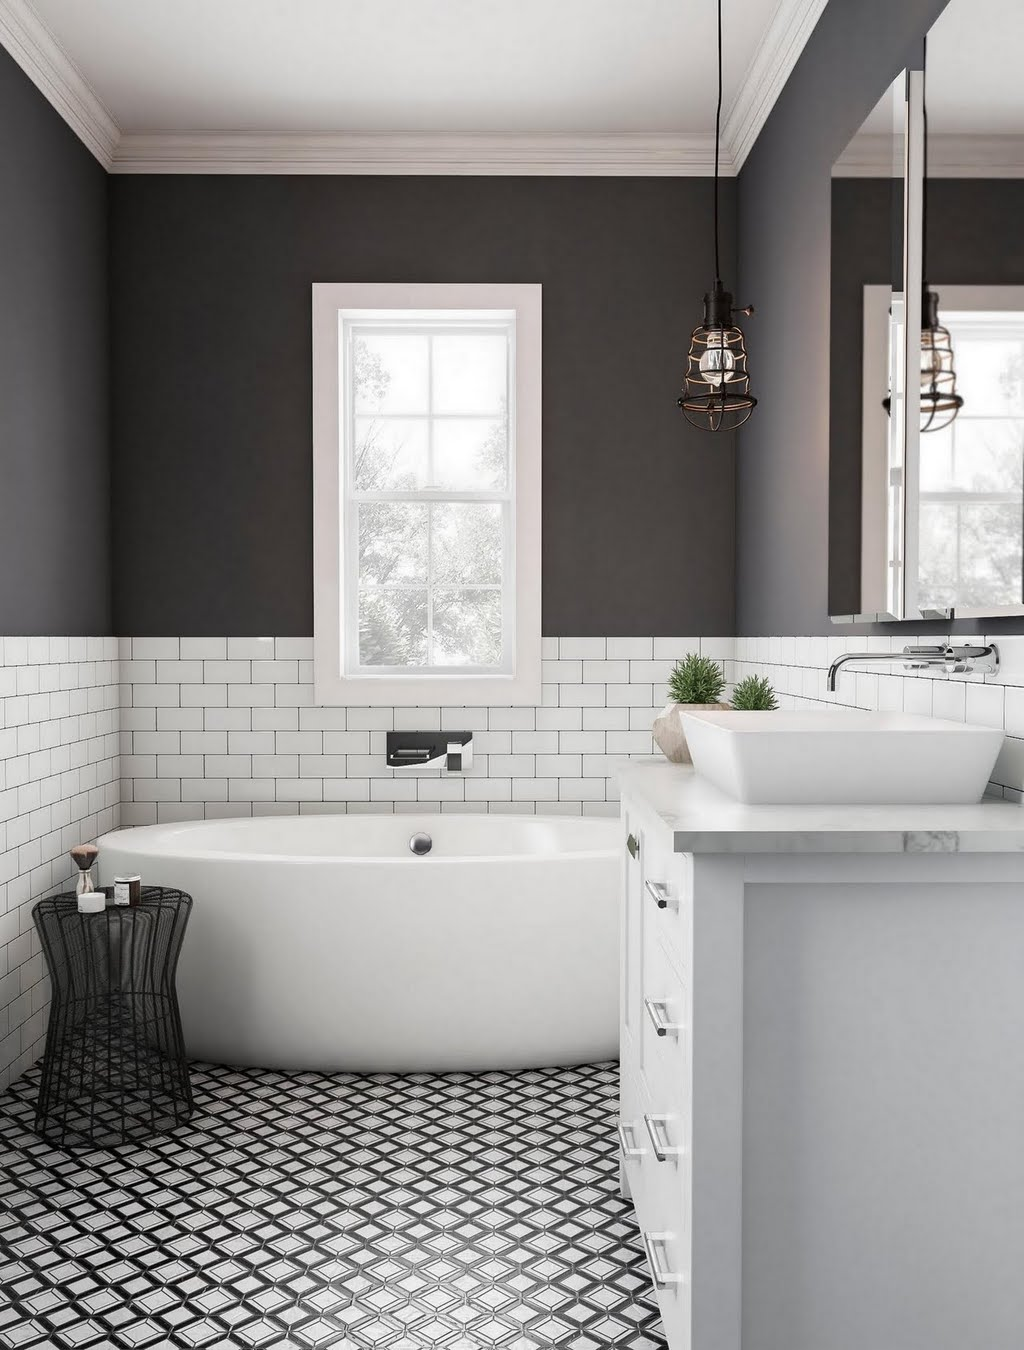 Modern Dark Bathroom with Tile Wainscoting – Bathroom – The Home Depot